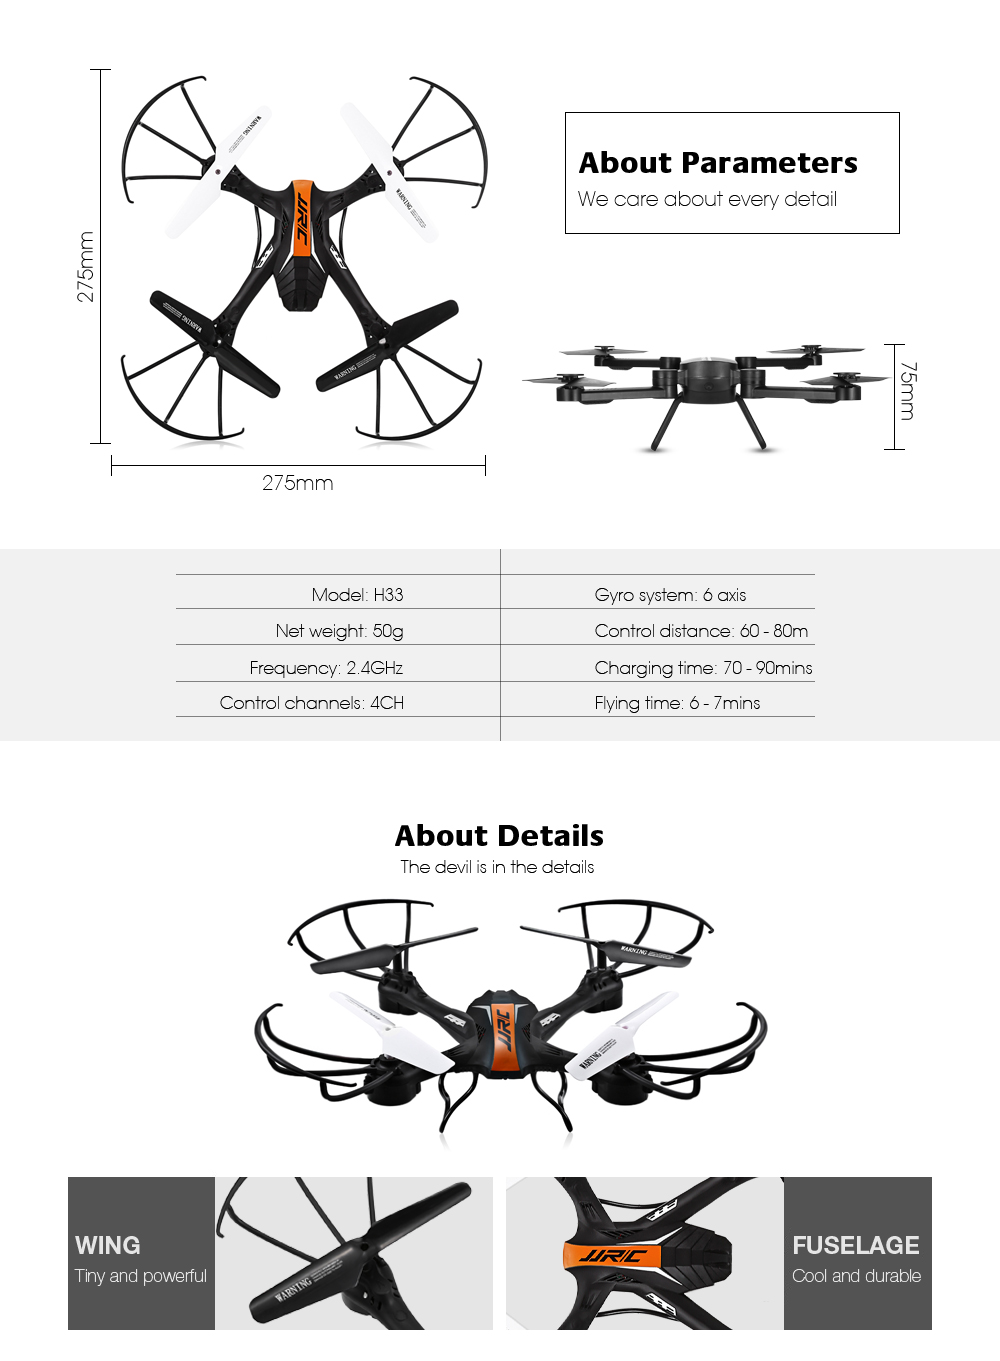 Jjrc H33 Mini Rc Drone Quadcopter 6 Axis Helicopter 4ch 2015 Silverado X61a Wiring Diagrams Only Specifications Age Range 14 Years Old Control Channels 4 Controller Mode Mode2 Material Abs Dimensions And Weight Product 00500 Kg